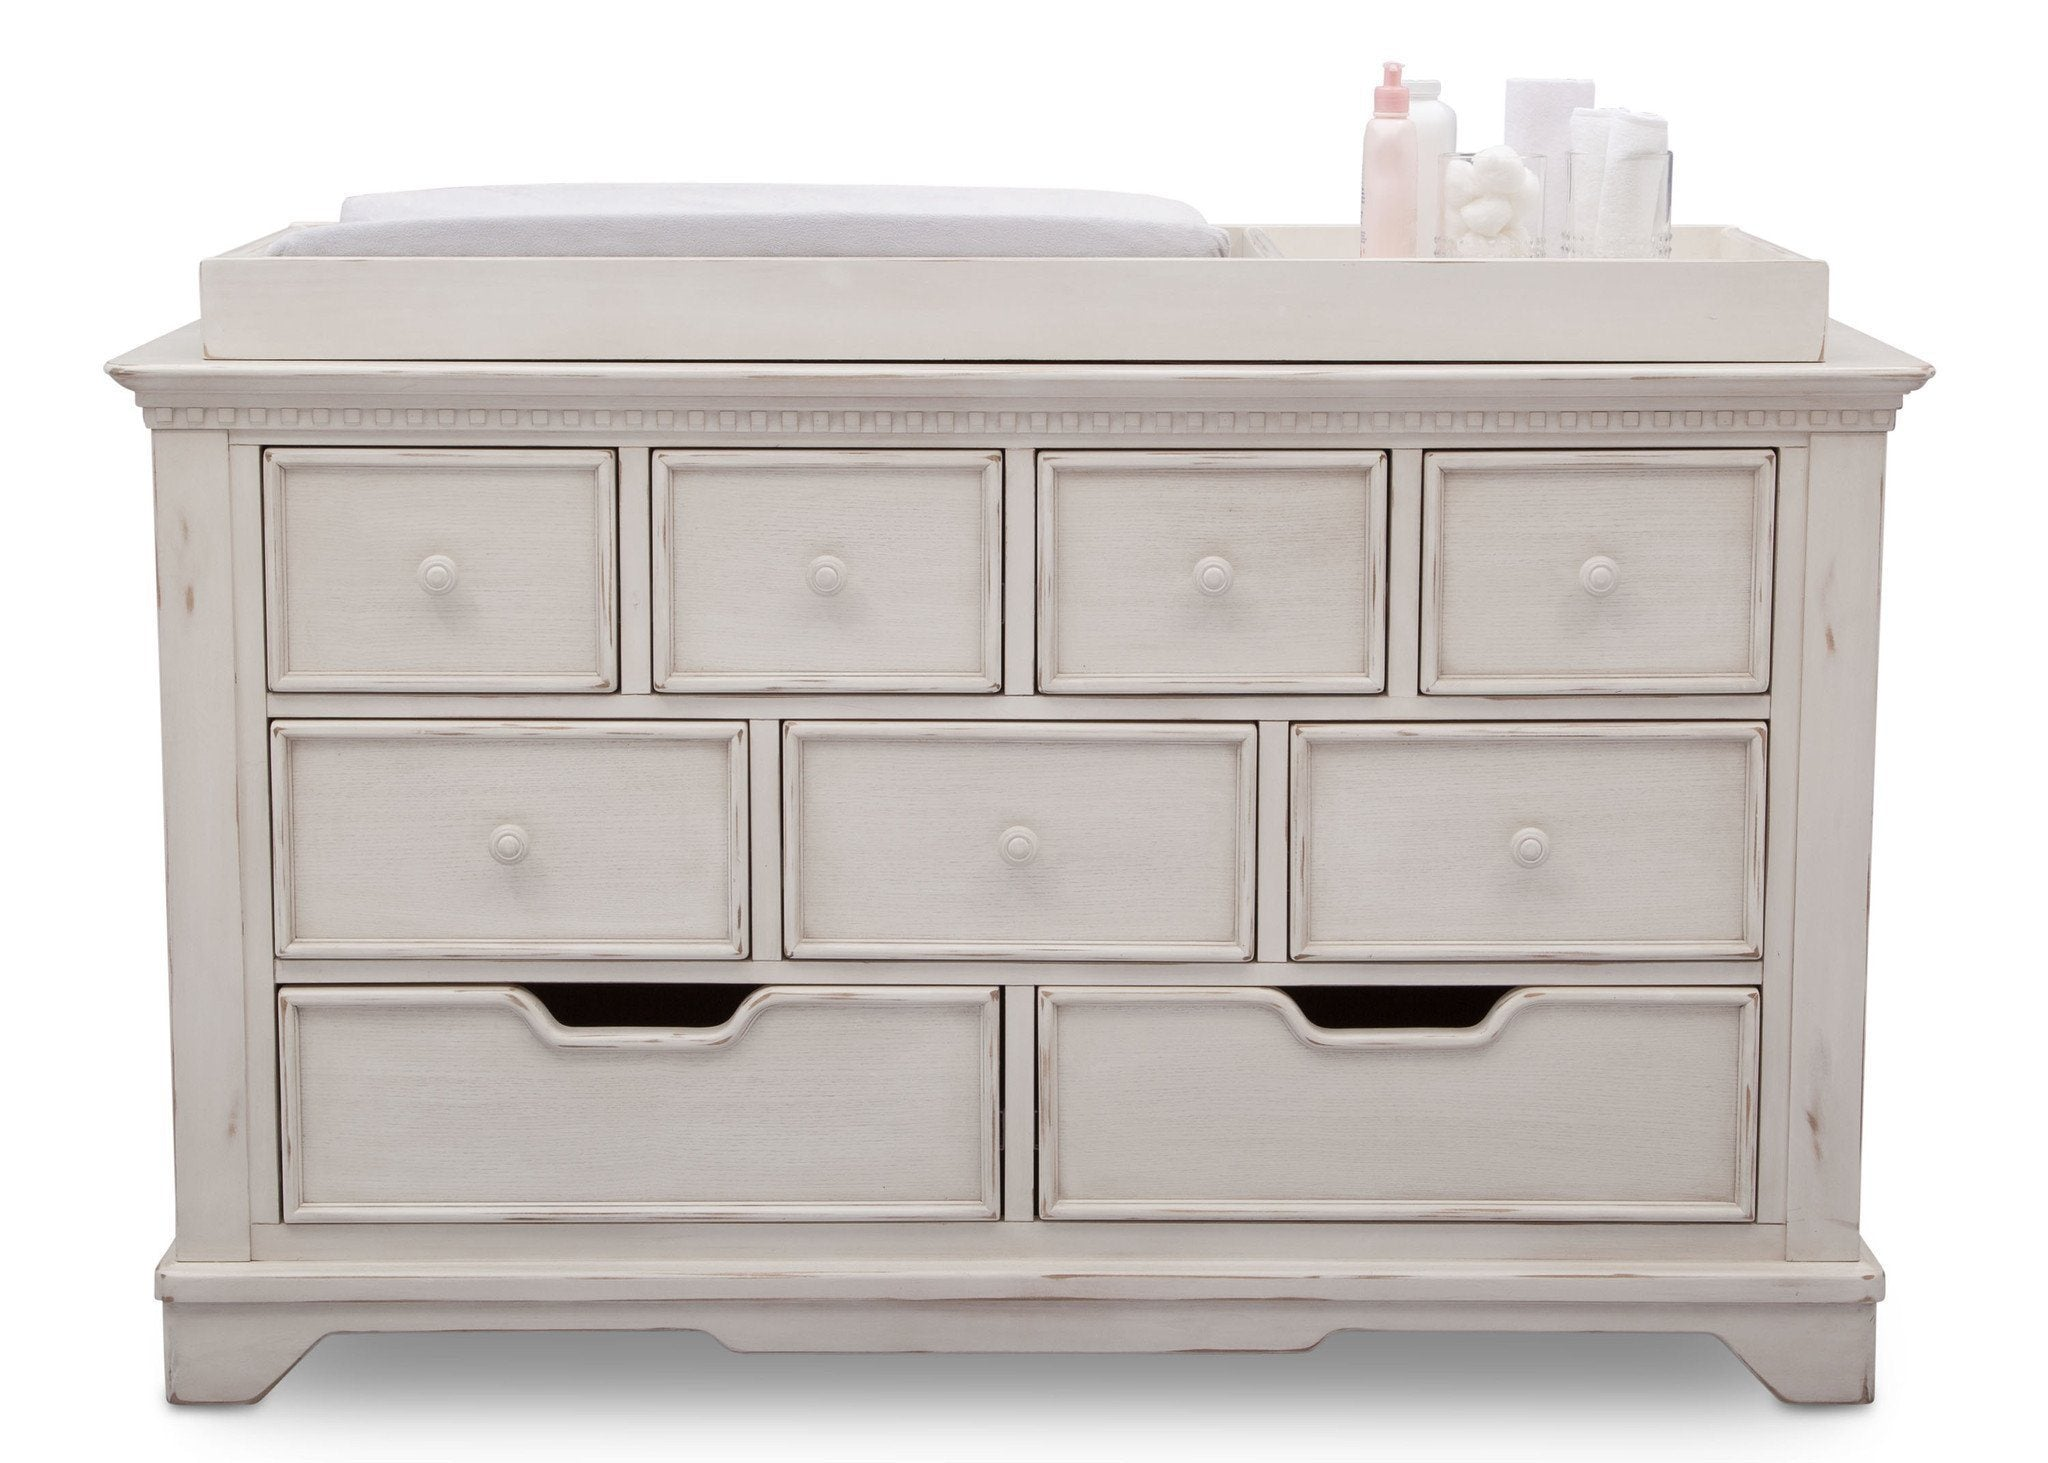 Simmons Kids Antique White (122) Tivoli 9 Drawer Dresser, Front View, a2a